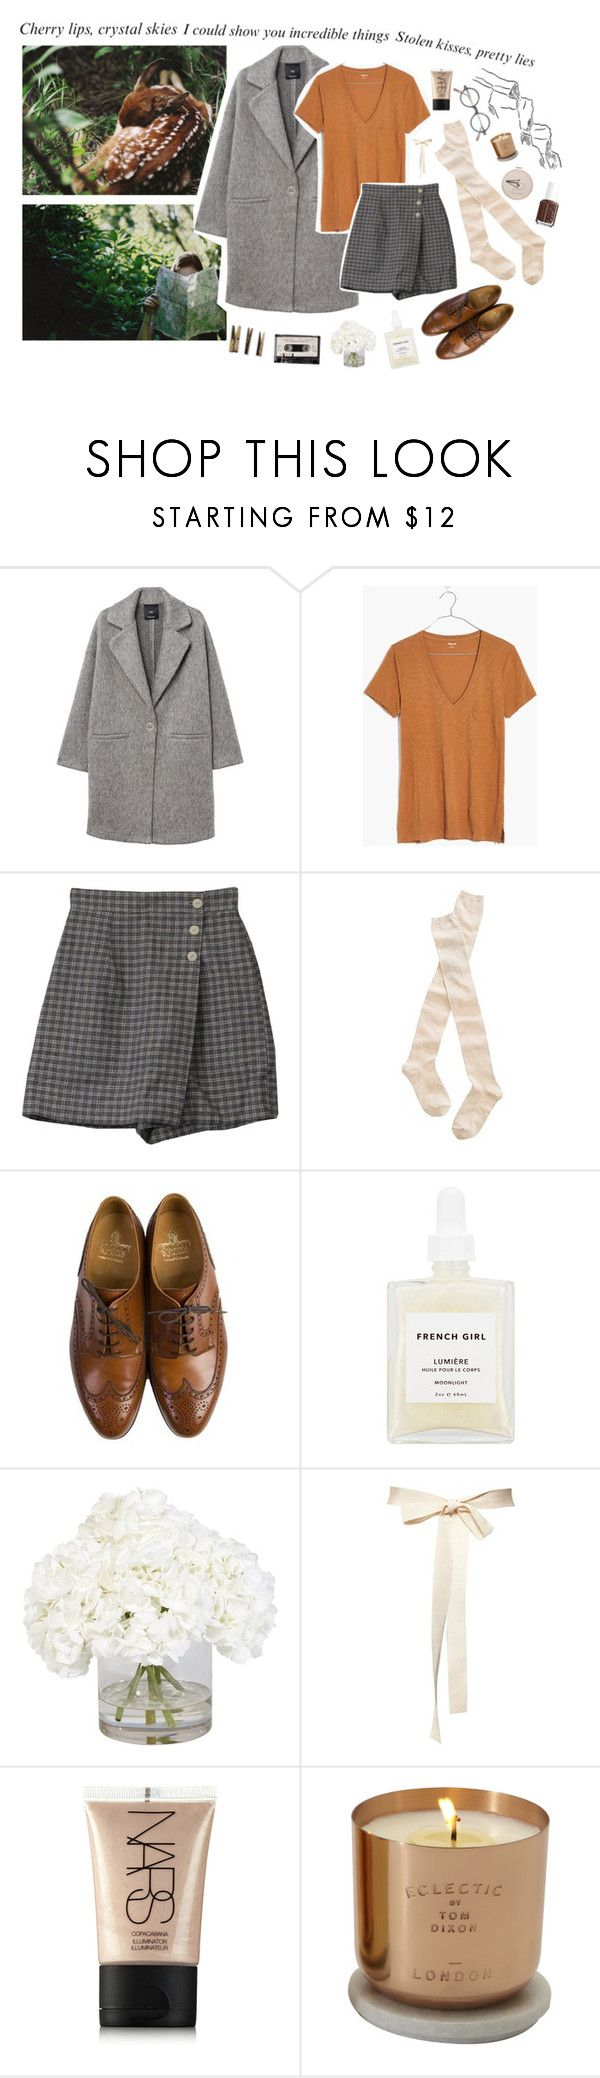 """stolen kisses."" by emma-dreams ❤ liked on Polyvore featuring MANGO, Madewell, Off-White, Crockett & Jones, French Girl, Ethan Allen, Laundry, NARS Cosmetics, Essie and Eclectic by Tom Dixon"